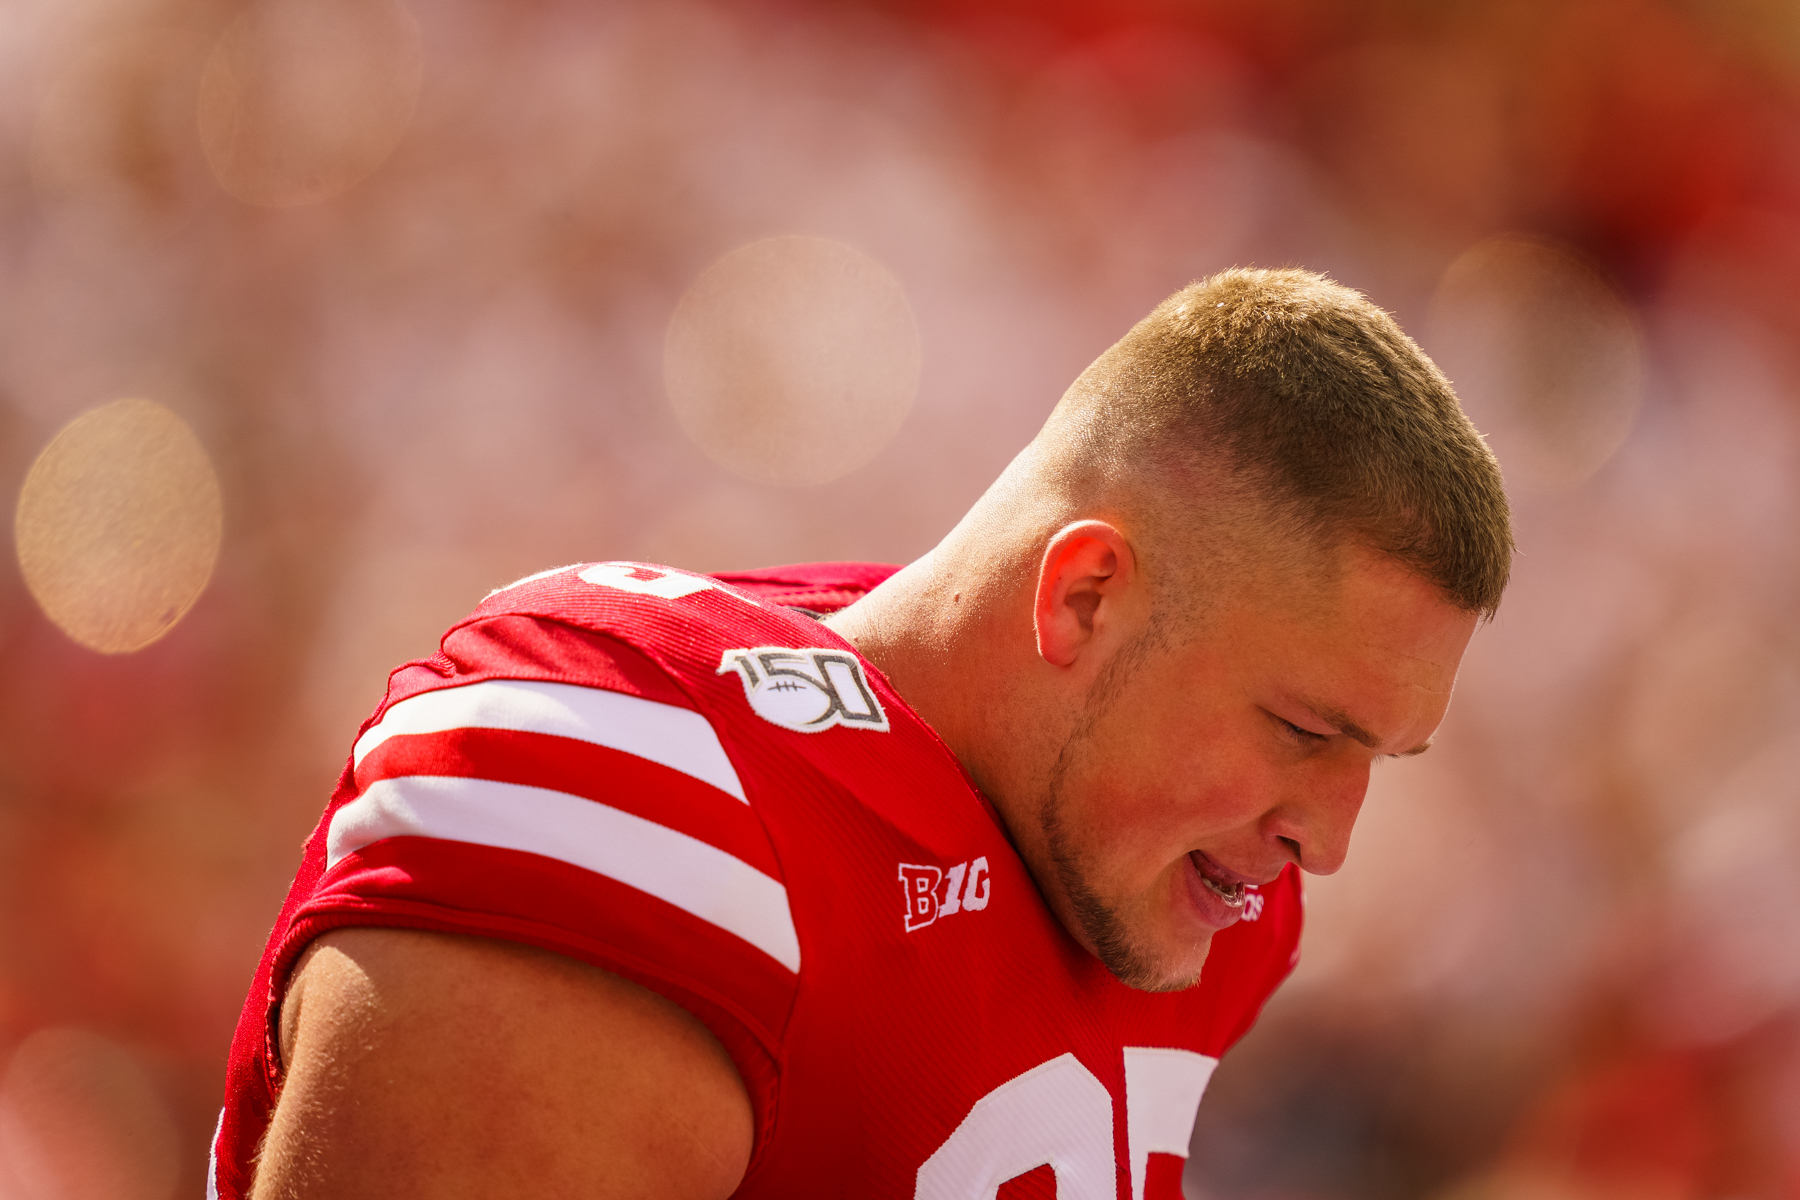 Ben Stille #95 of the Nebraska Cornhuskers during Nebraska's 35-21 win over South Alabama at Memorial Stadium in Lincoln, Nebraska on Aug. 31, 2019.   © Aaron Babcock